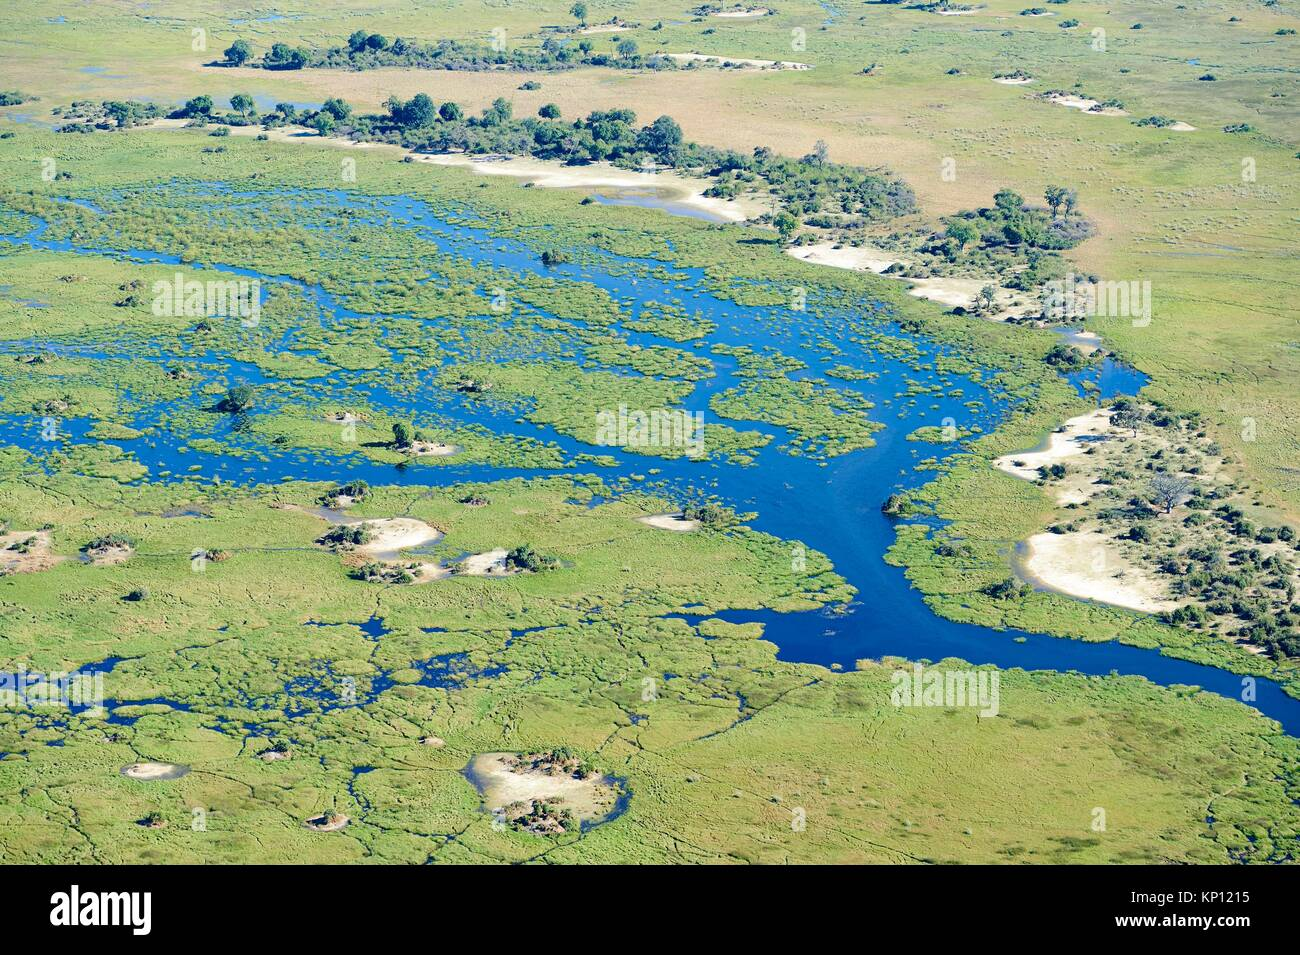 Aerial view of the Okavango delta with channels, lagoons, swamps and islands, Botswana, Africa. - Stock Image